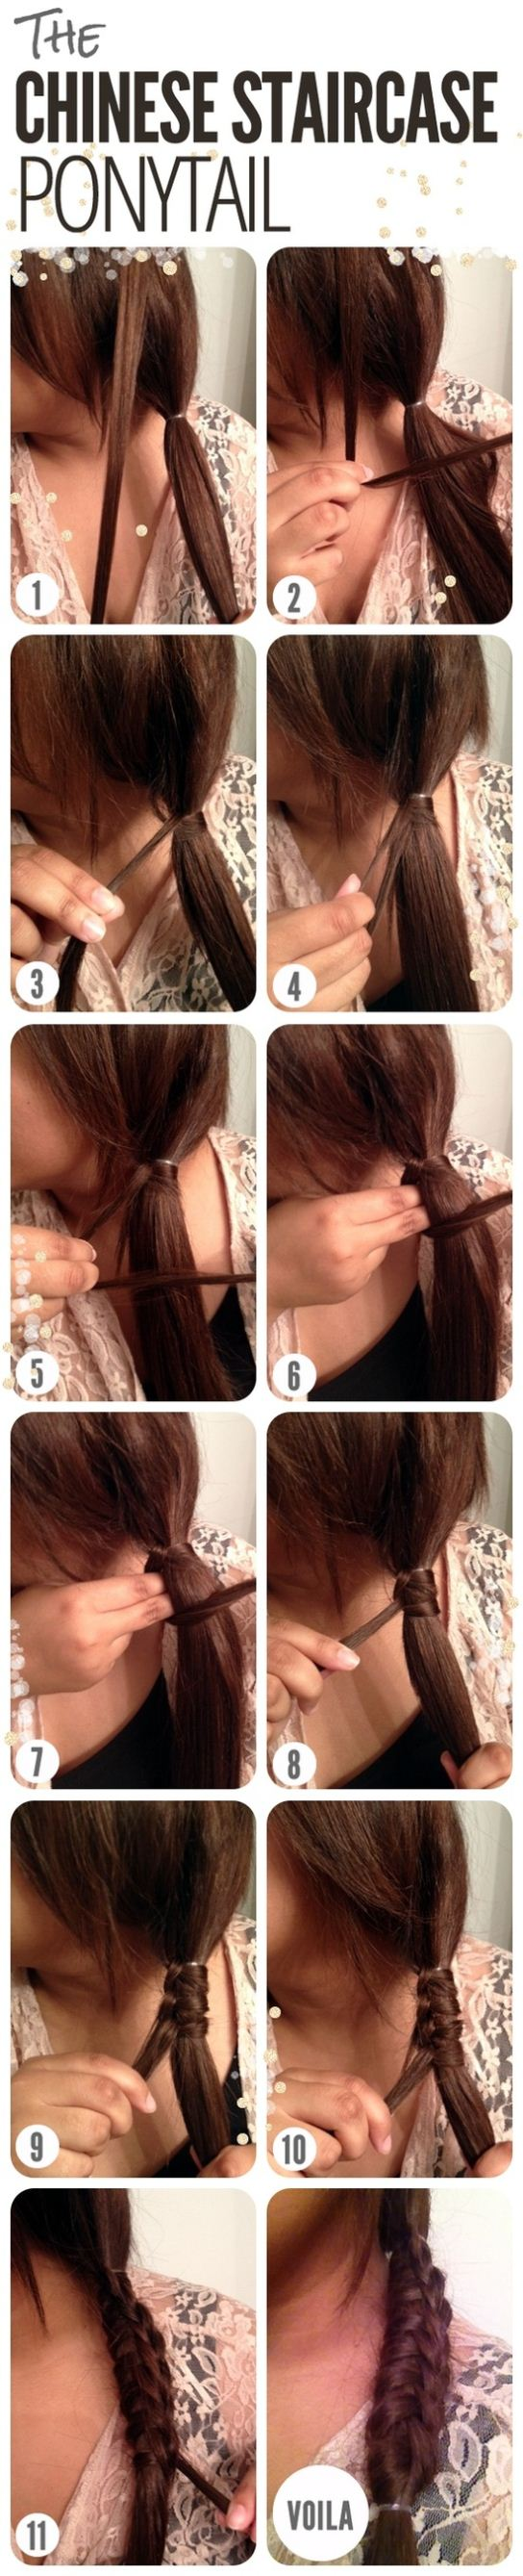 DIY Chinese Staircase Ponytail Hairstyle via